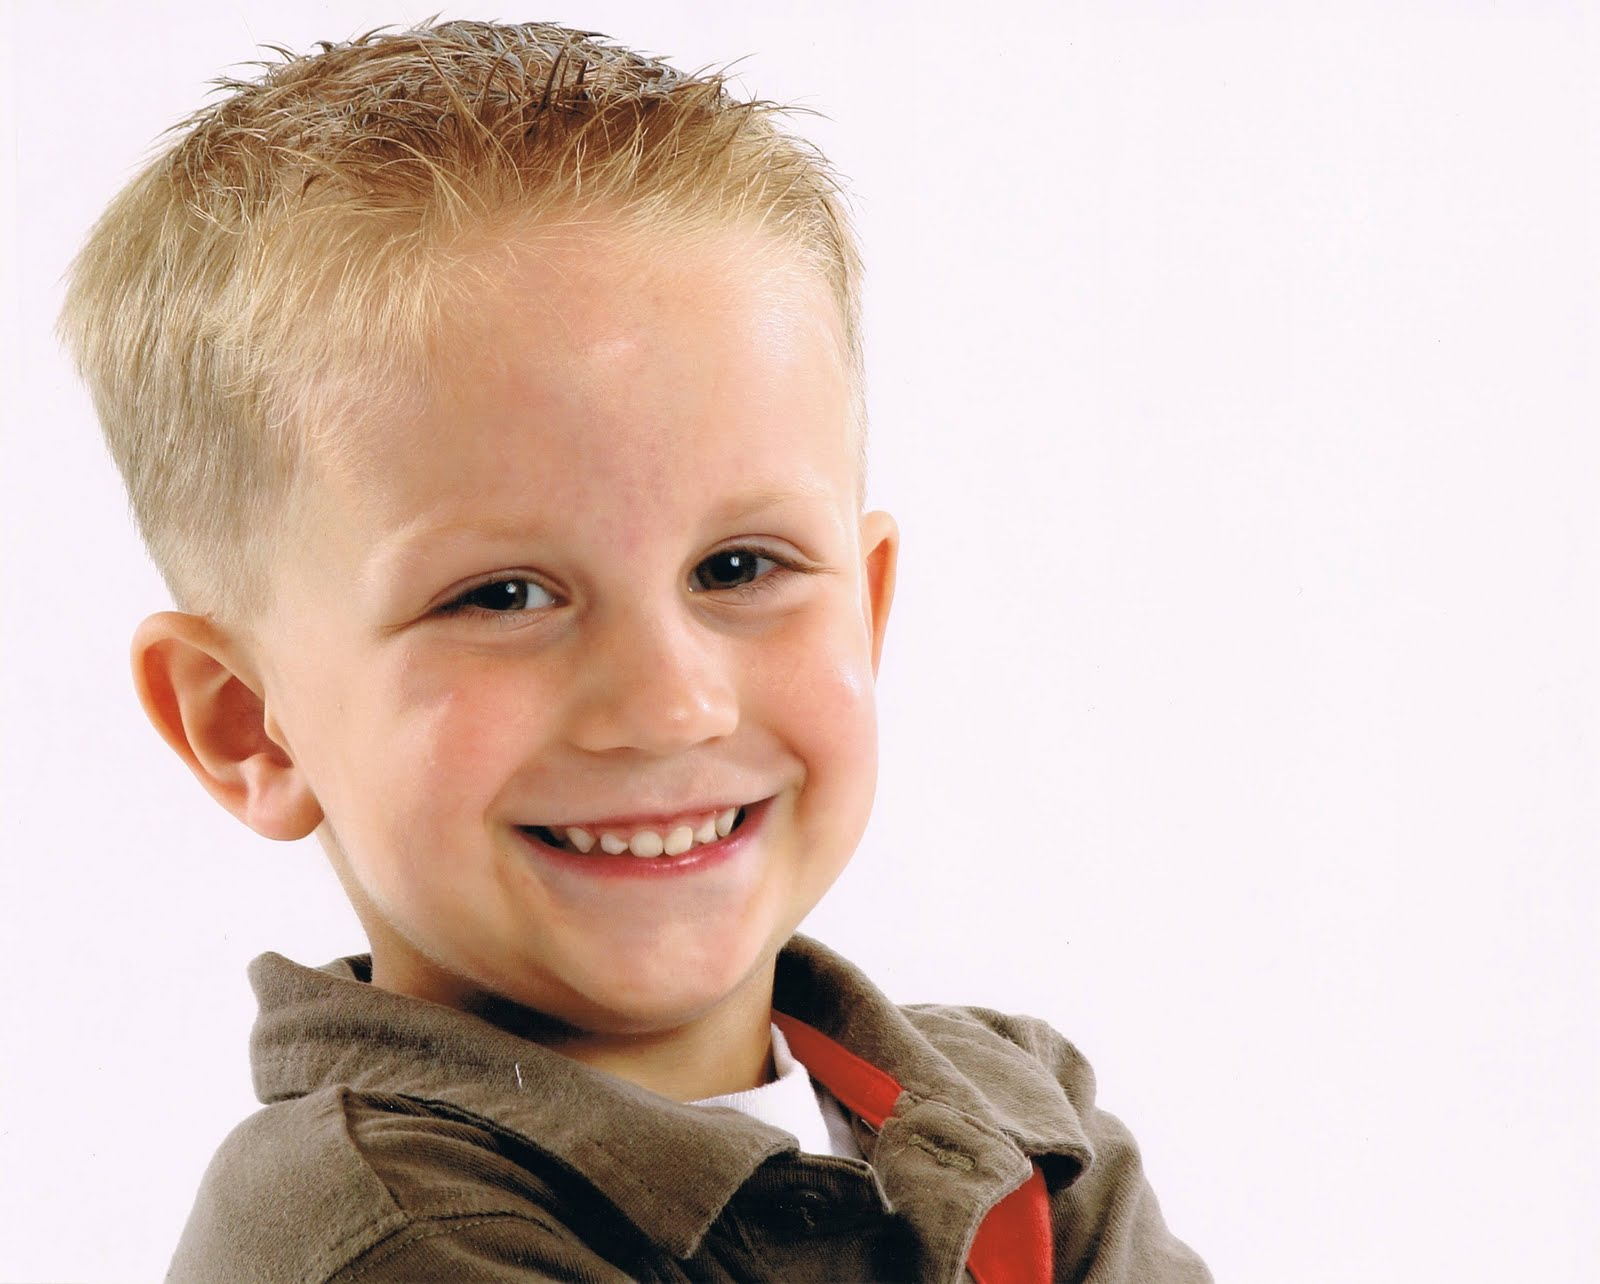 6 Year Old Boys Haircuts - newhairstylesformen2014.com